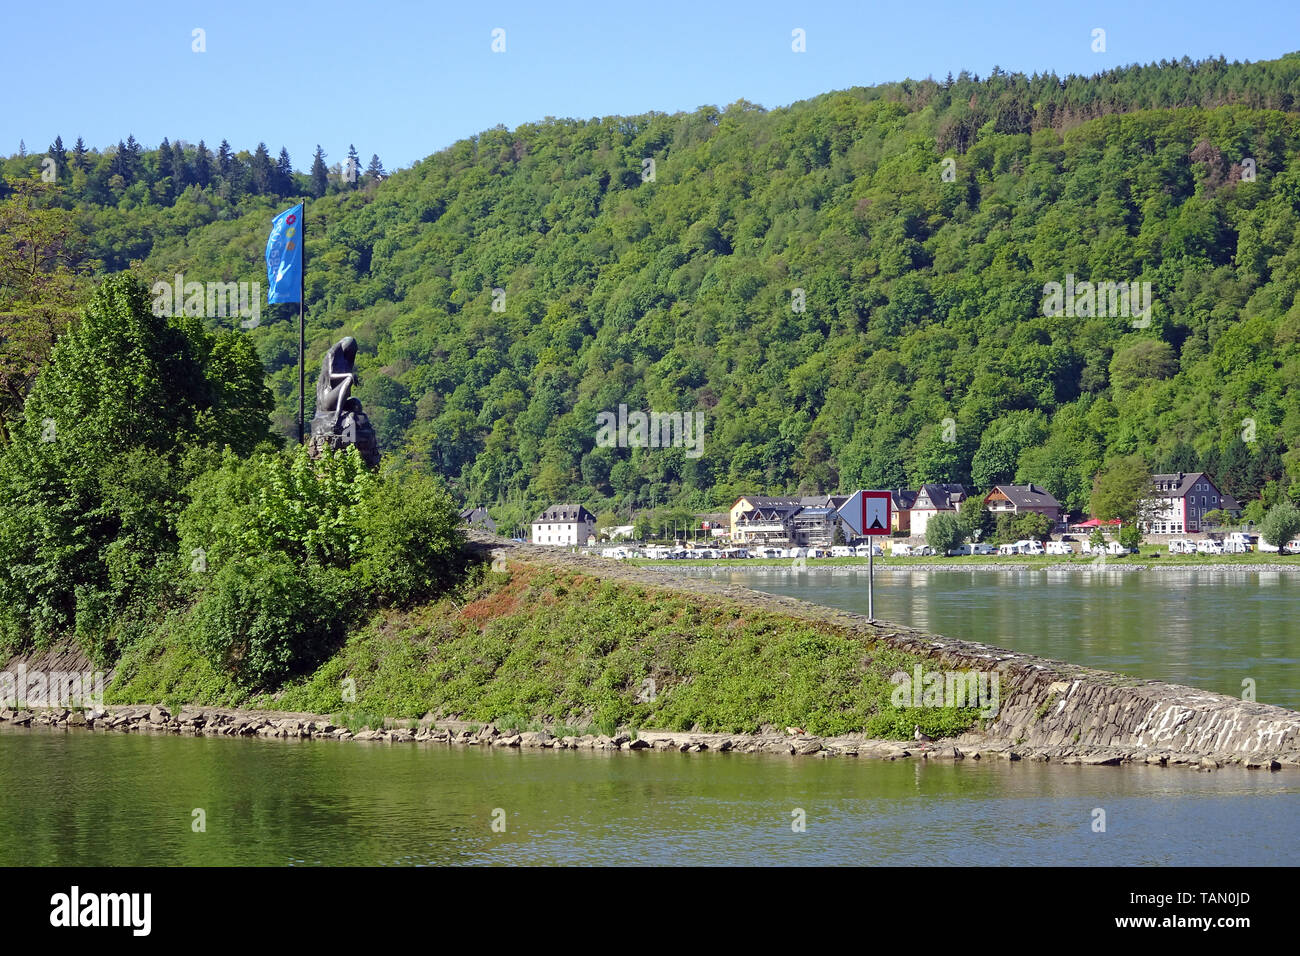 Lorelei statue at St. Goarshausen, Unesco world heritage site, Upper Middle Rhine Valley, Rhineland-Palatinate, Germany Stock Photo